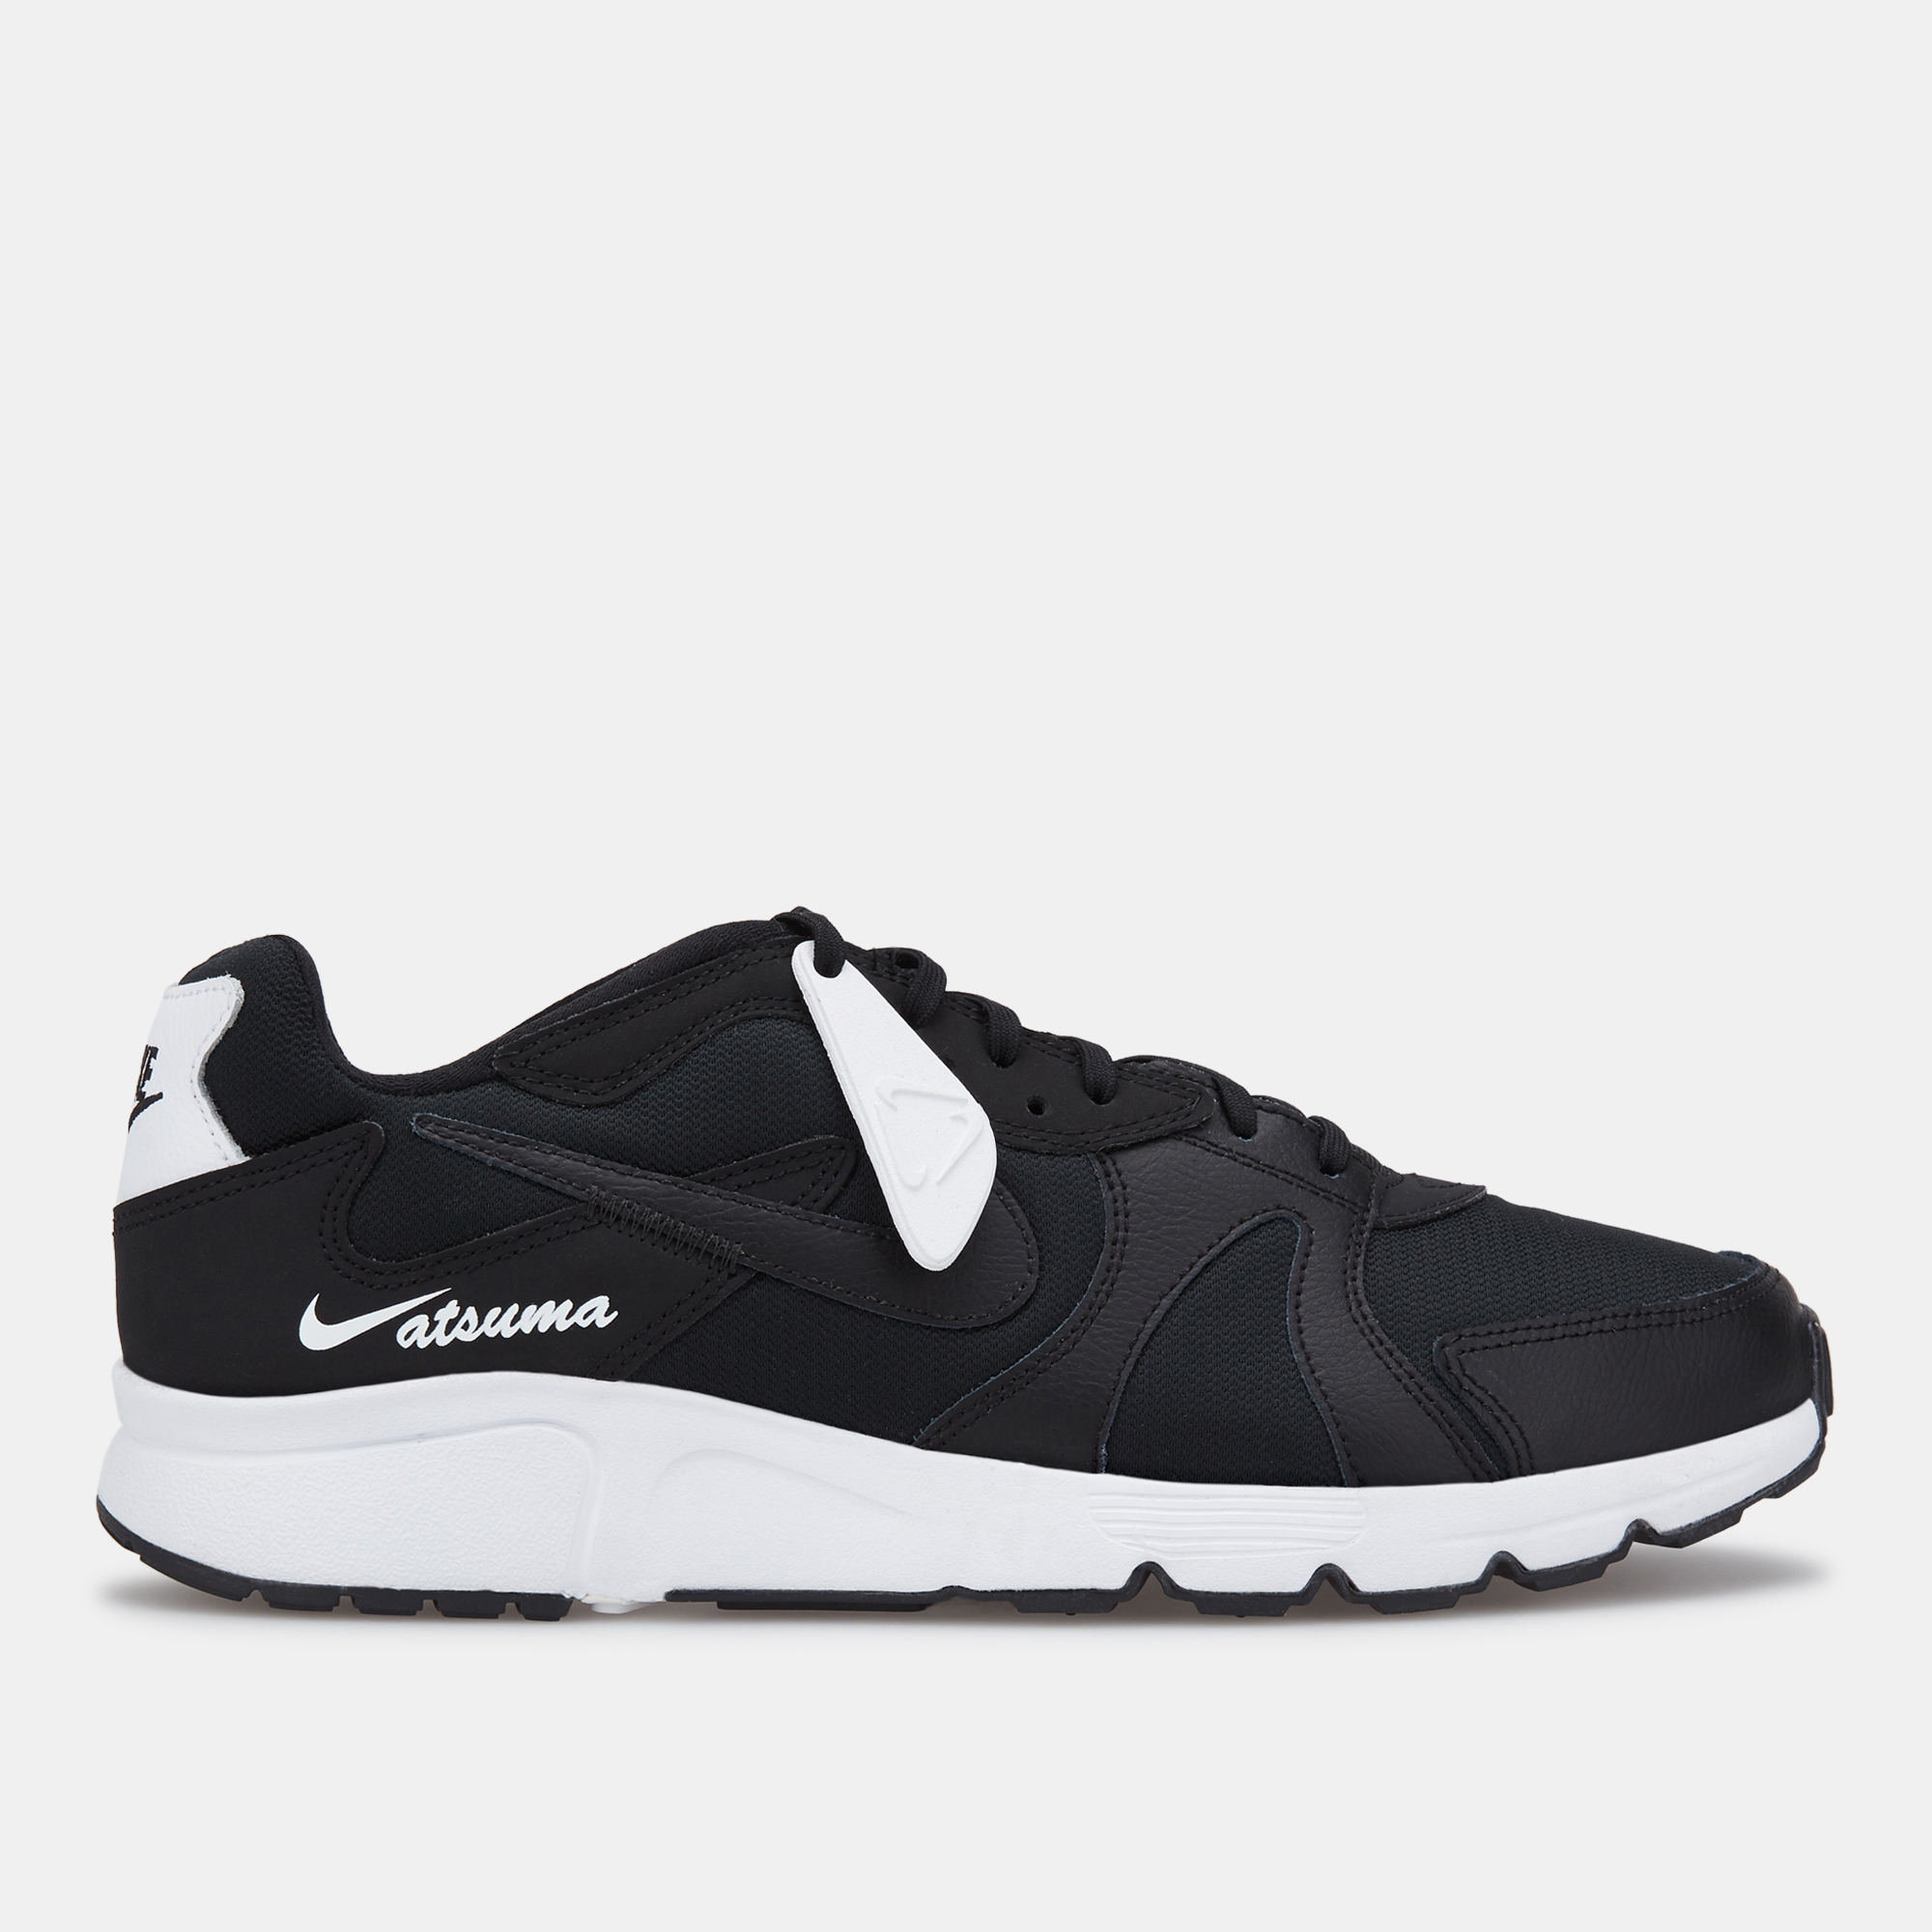 Nike Men's Atsuma Shoe